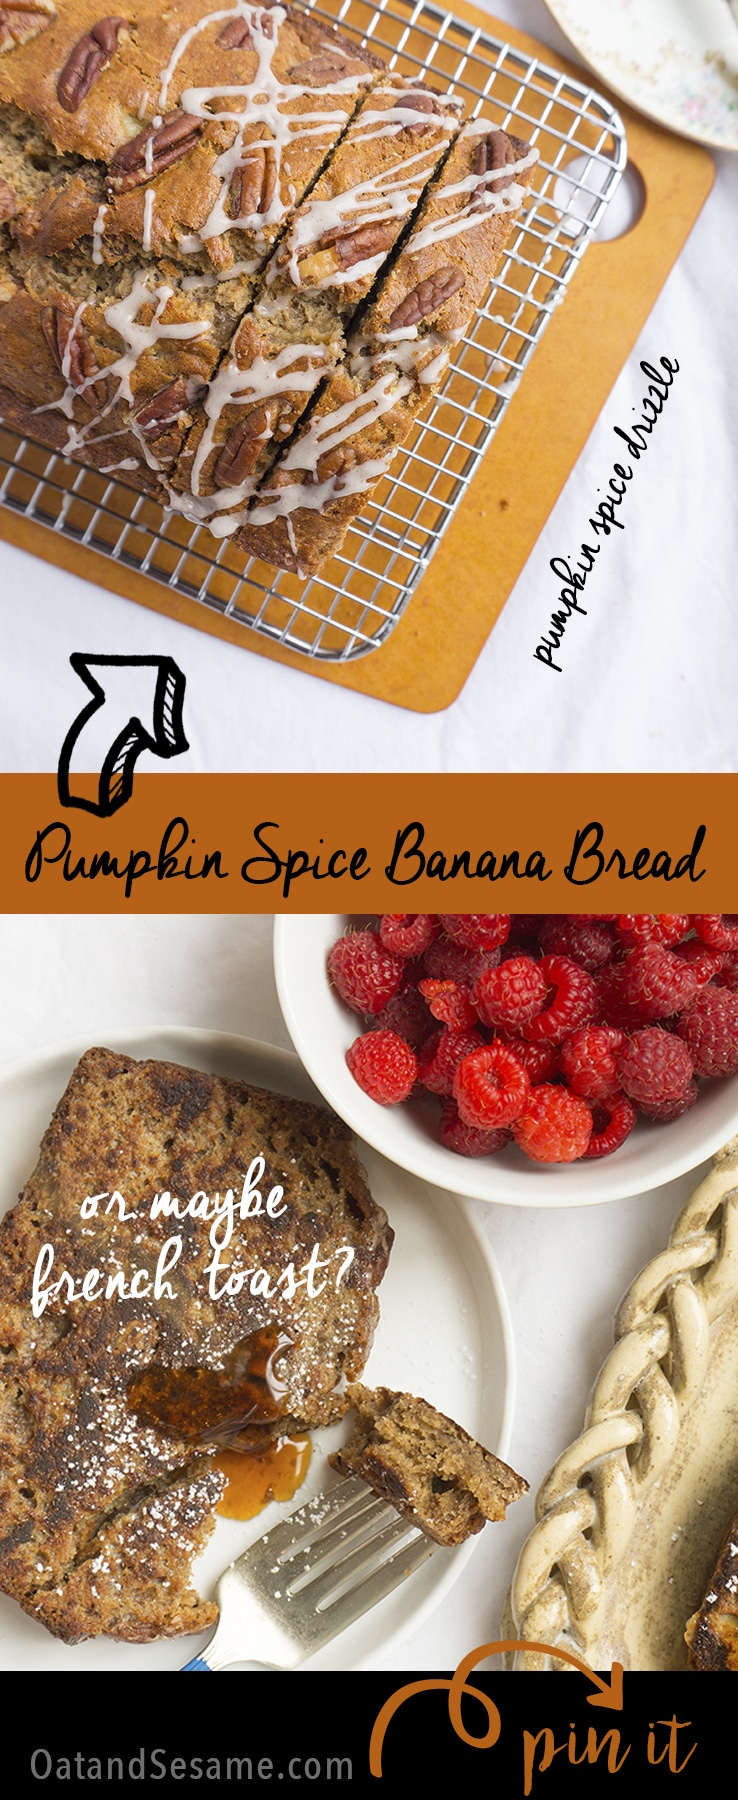 Elevate your fall baking with pumpkin spice extract in this delicious Banana Bread Gets a Fall Makeover! Pumpkin Spice Banana Bread | BAKING | #FALL | #BANANA | #PUMPKIN | #Recipes at OatandSesame.com